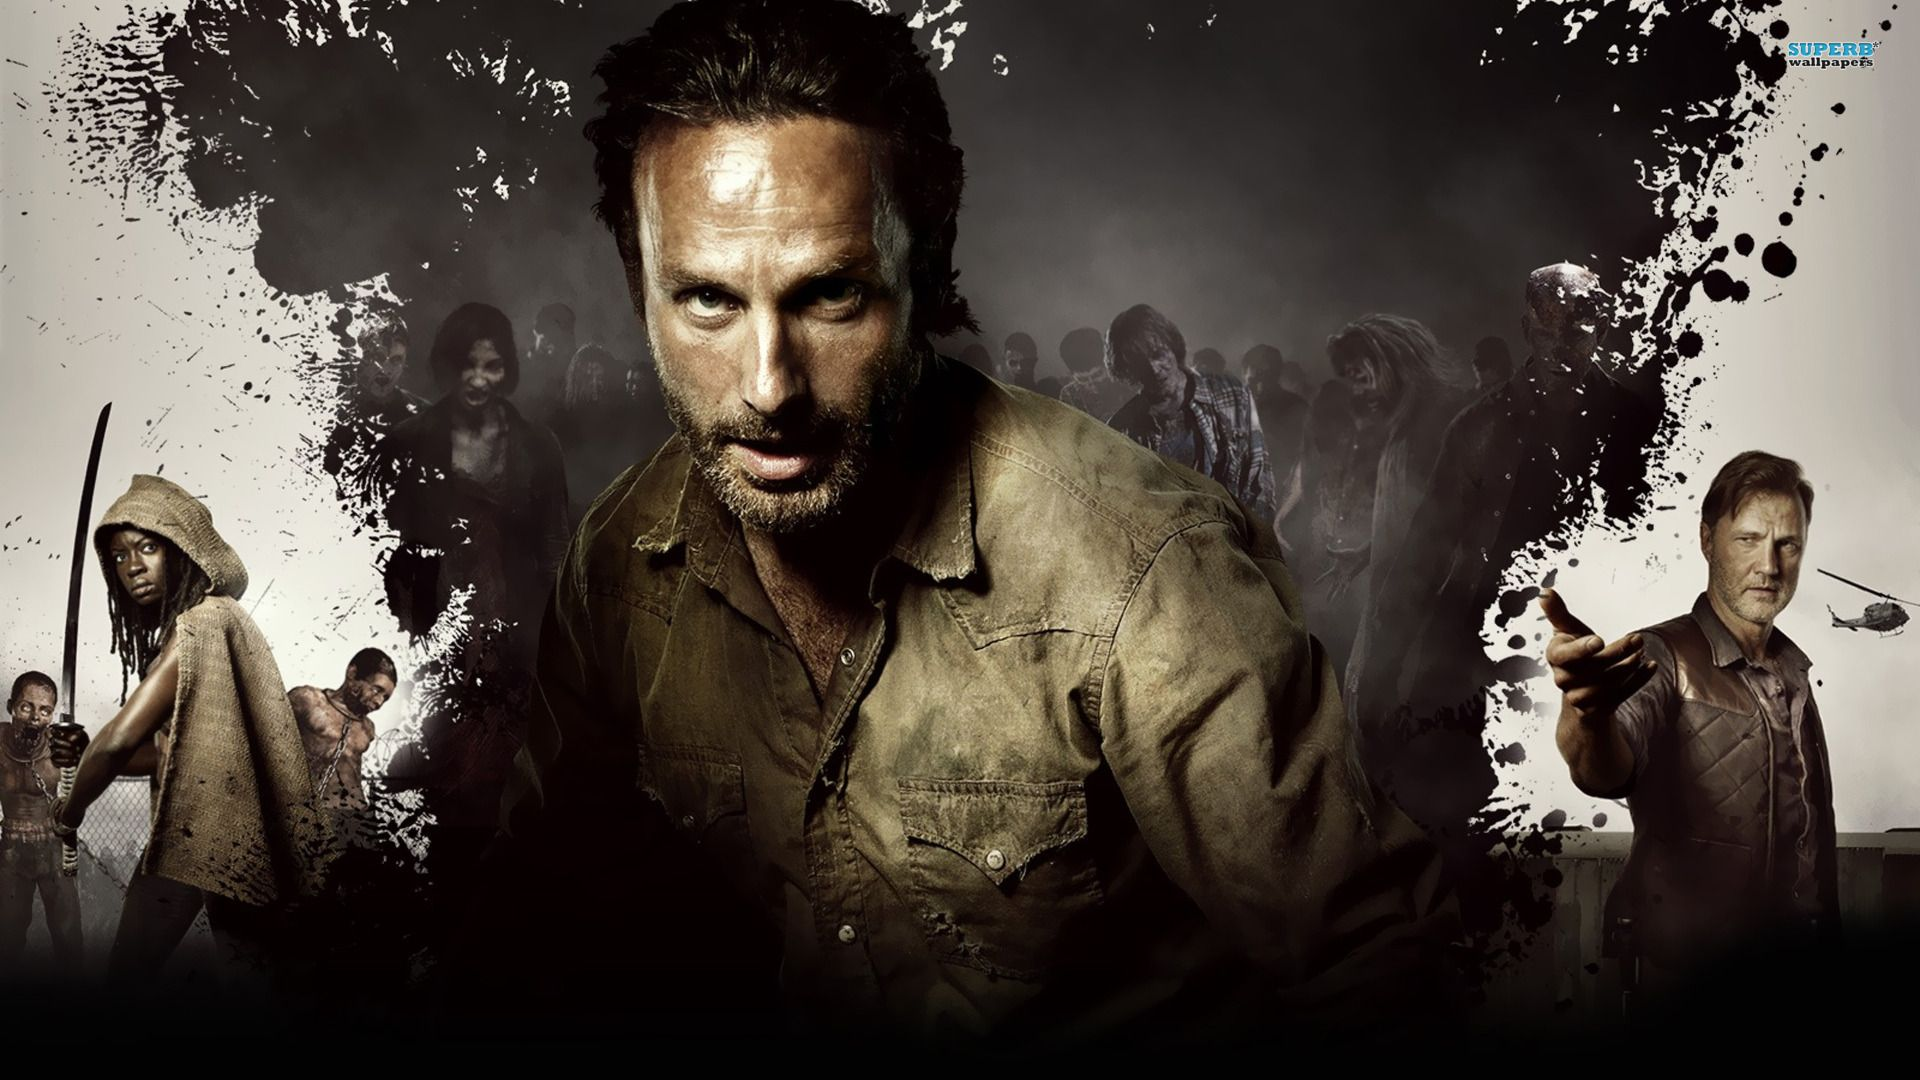 46 The Walking Dead Wallpaper 1920x1080 On Wallpapersafari